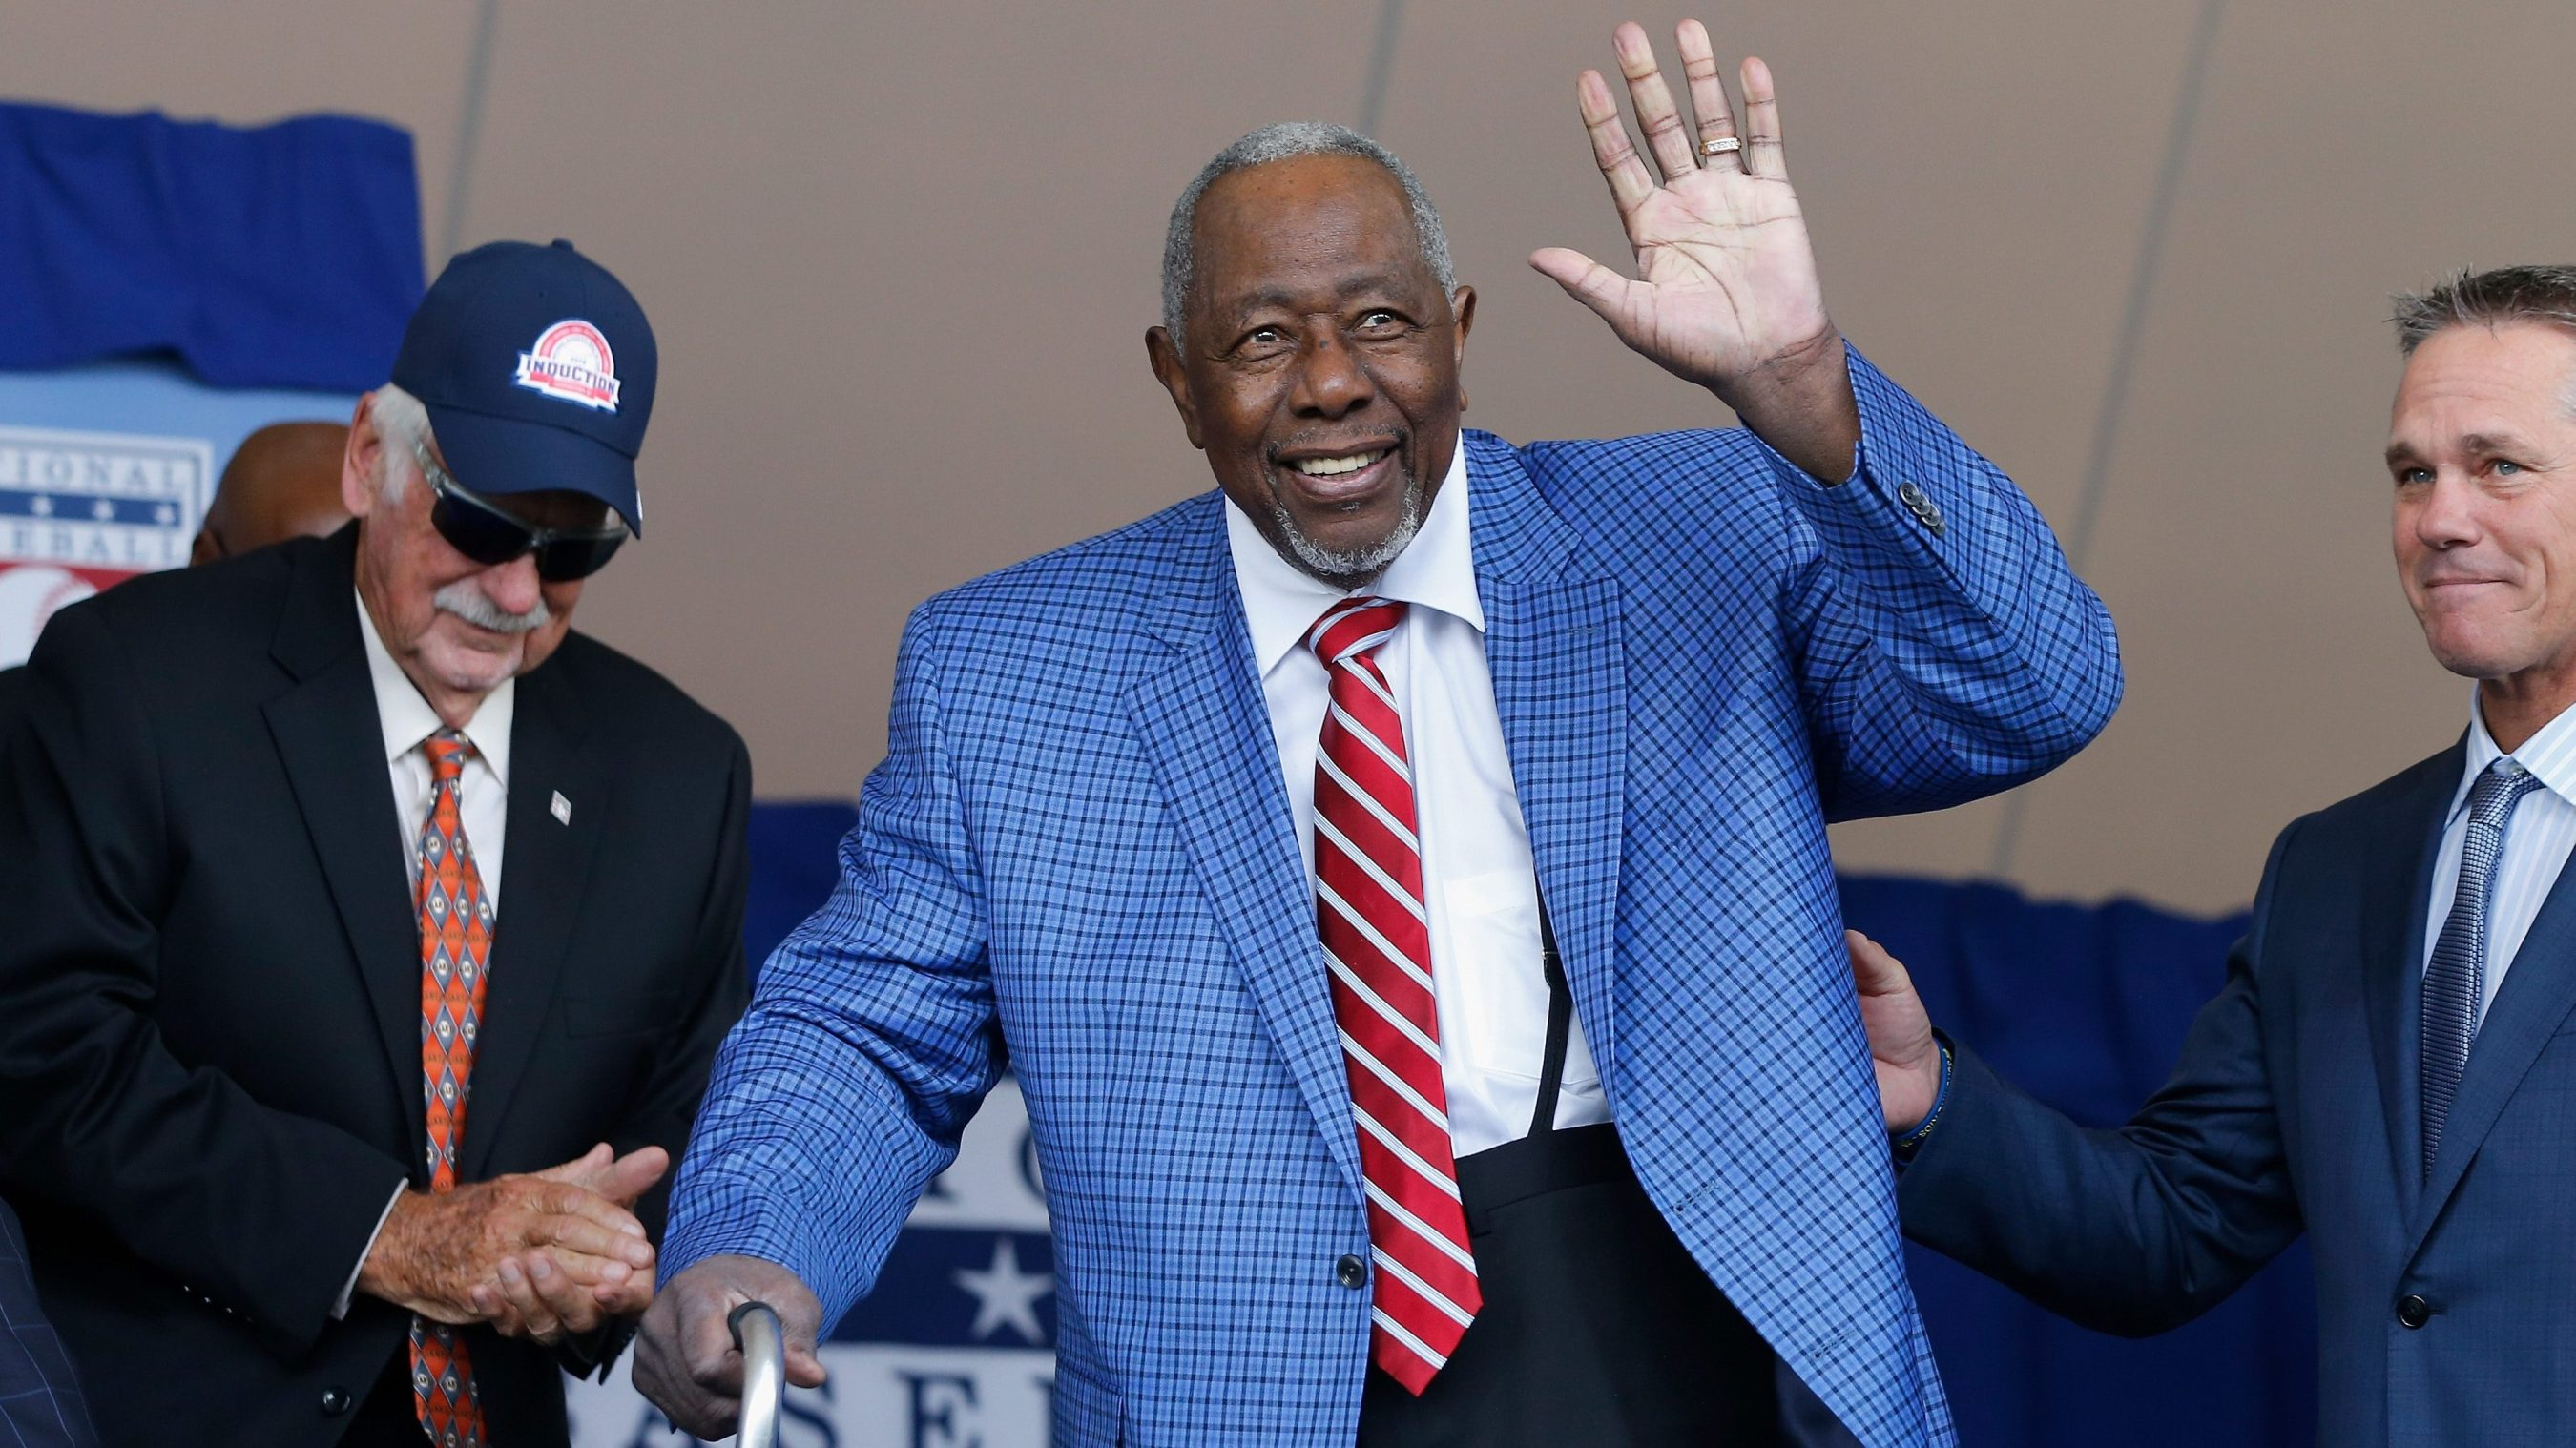 c6362564340 Today in black history: Happy birthday, Hank Aaron, Kareem Abdul-Jabbar  hits 38,000 points, Bob Douglas to the Hall of Fame, and more